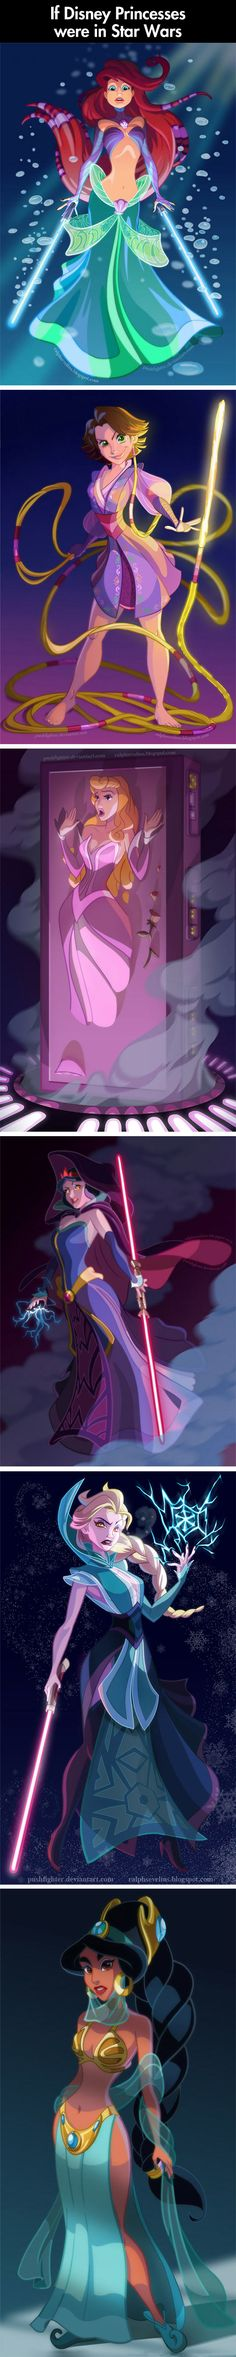 Disney ladies in Star Wars